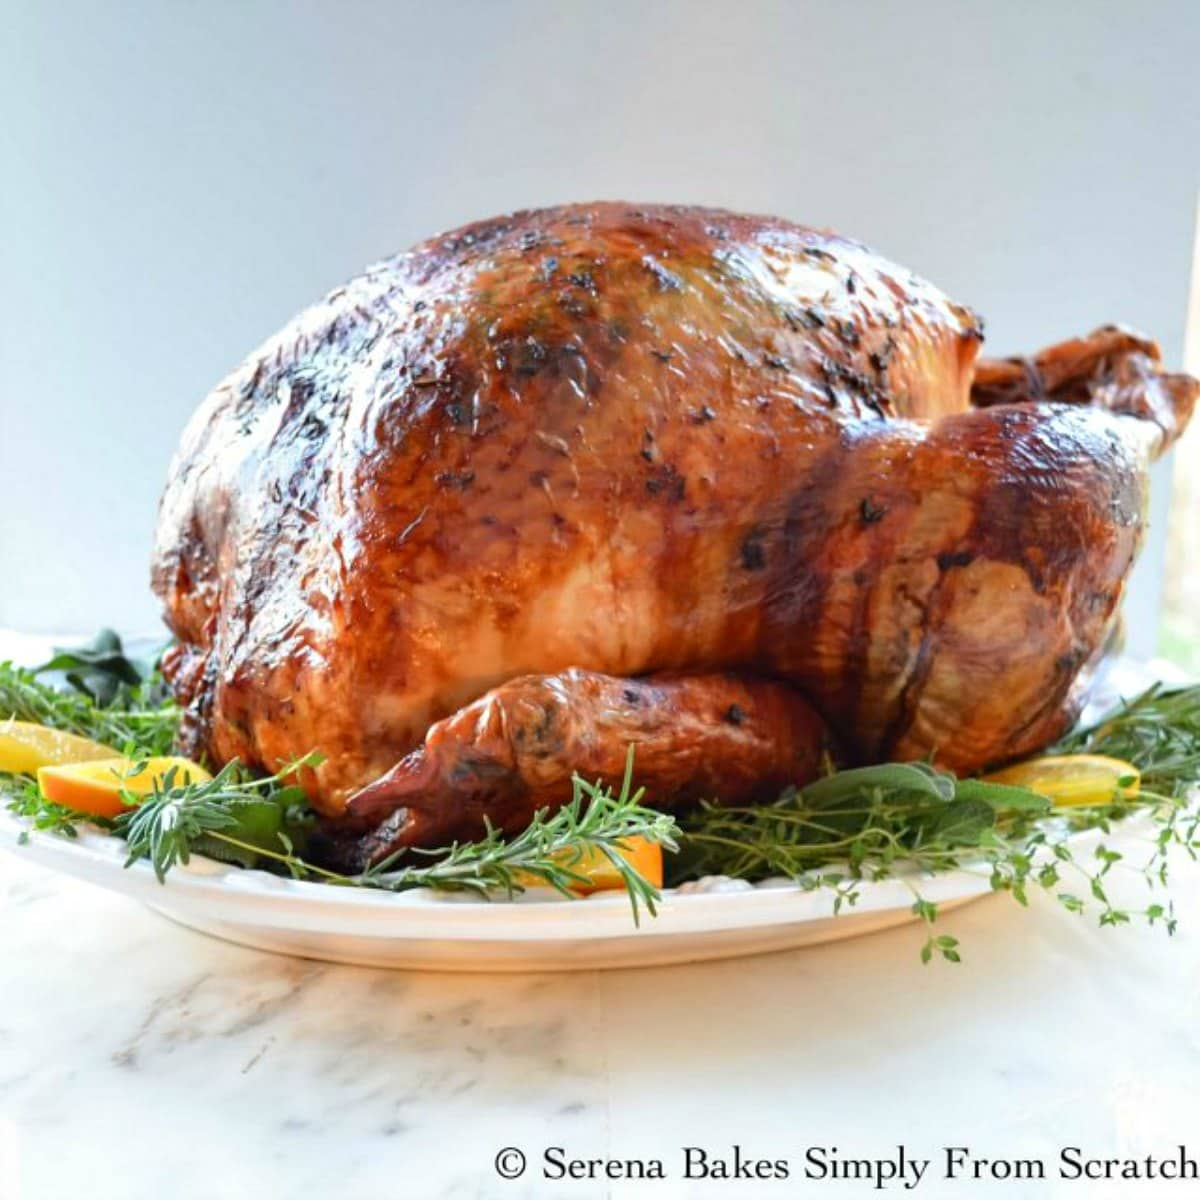 Super Moist and Juicy Turkey baked in cheesecloth and seasoned with herb butter is a Thanksgiving must make! The flavors amazing from Serena Bakes Simply From Scratch.